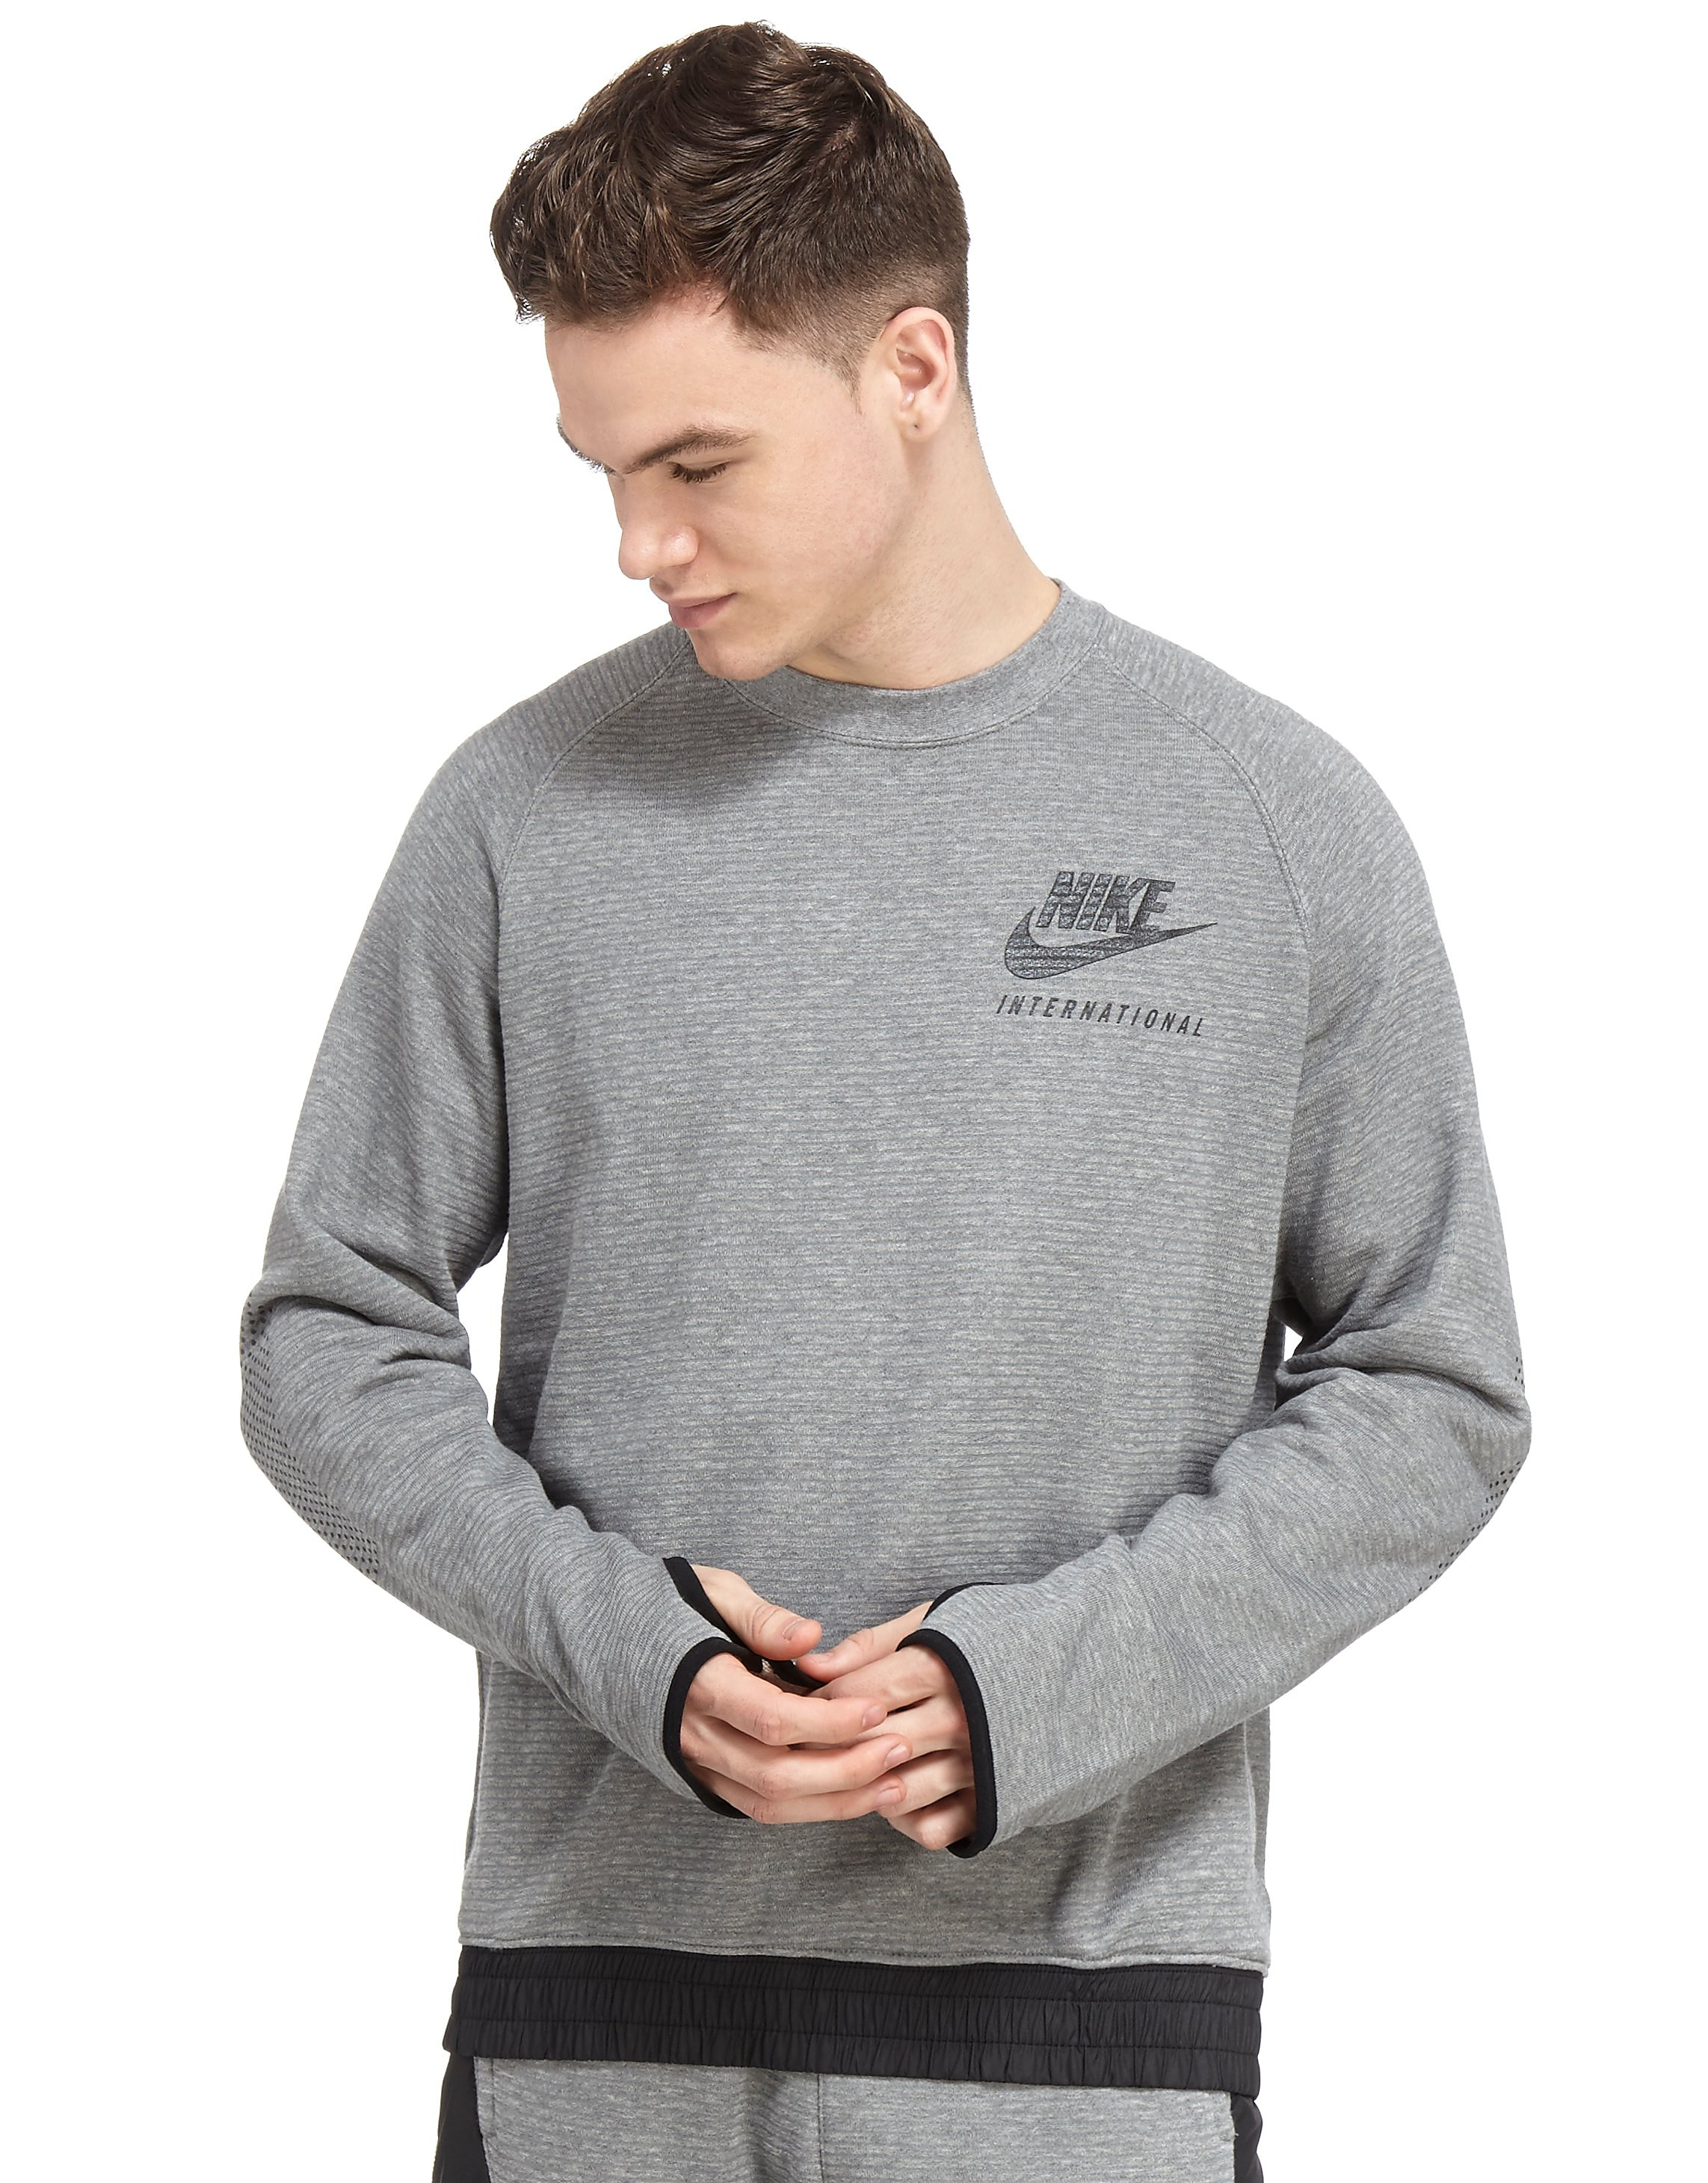 Nike International Crew Sweatshirt